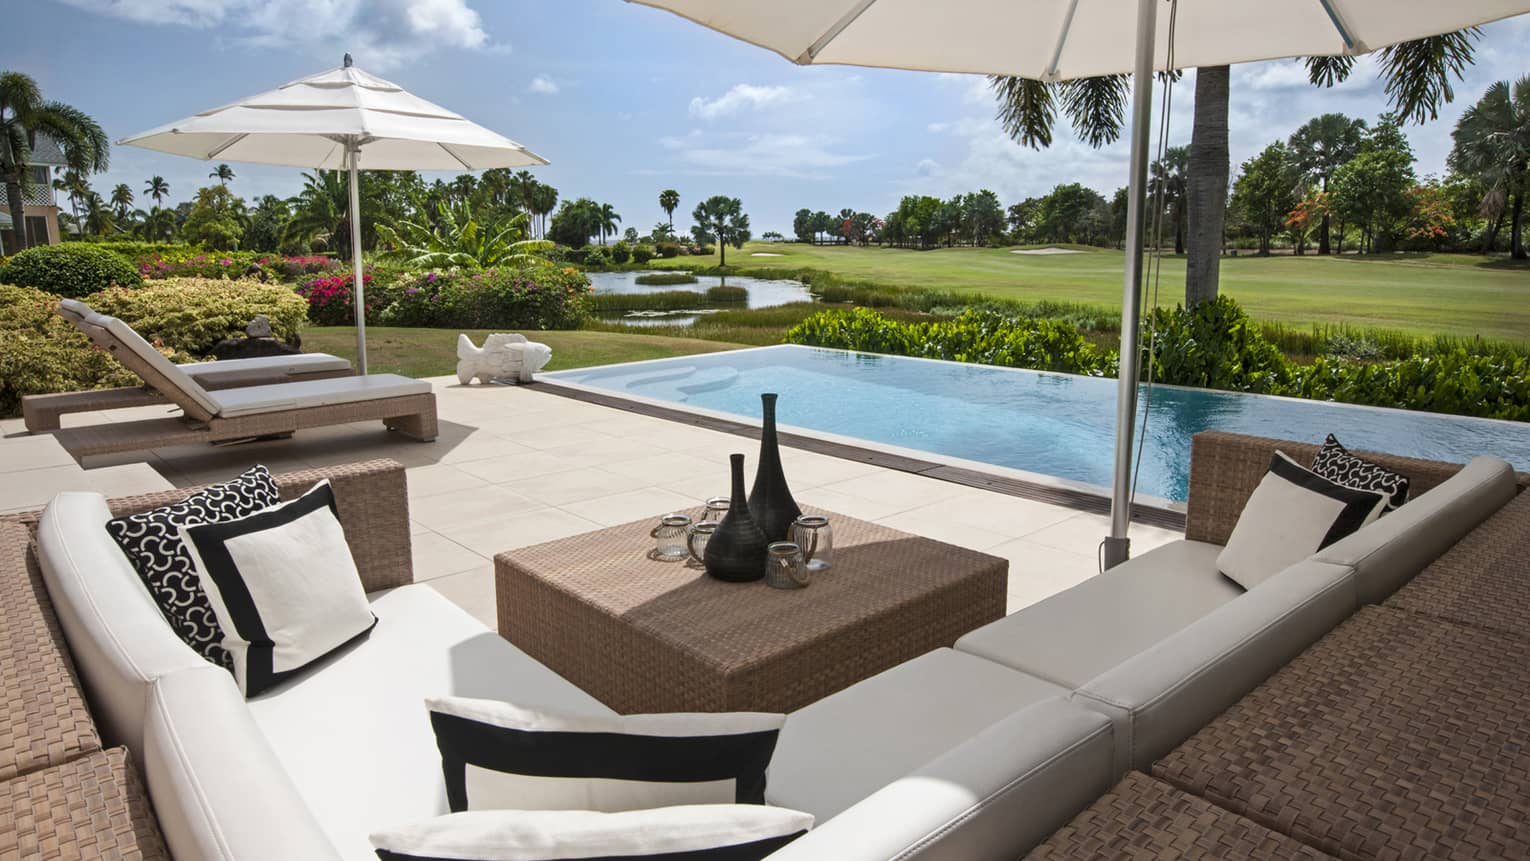 Palm Grove Residence Villa L-shaped patio sofa, cushions by plunge pool